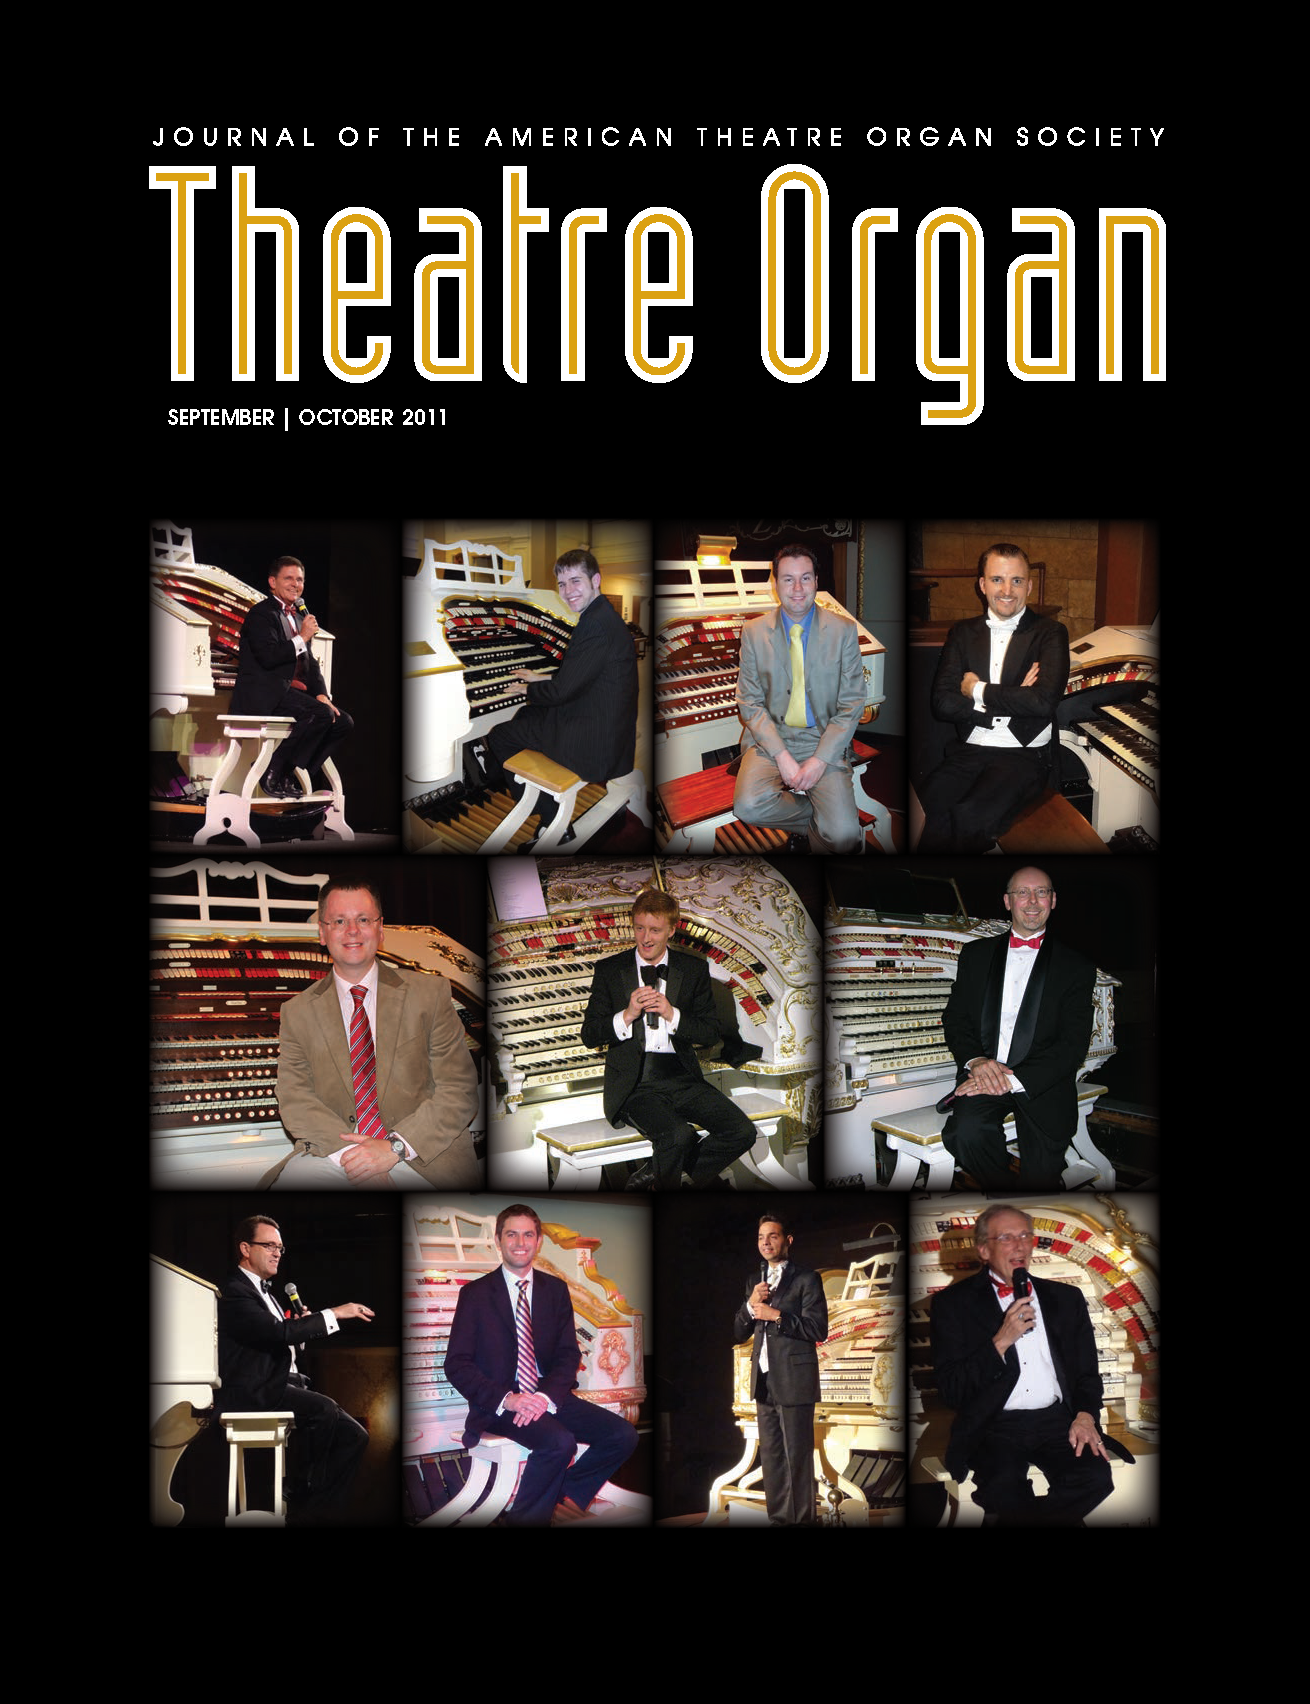 Theatre Organ, September - October 2011, Volume 53, Number 5